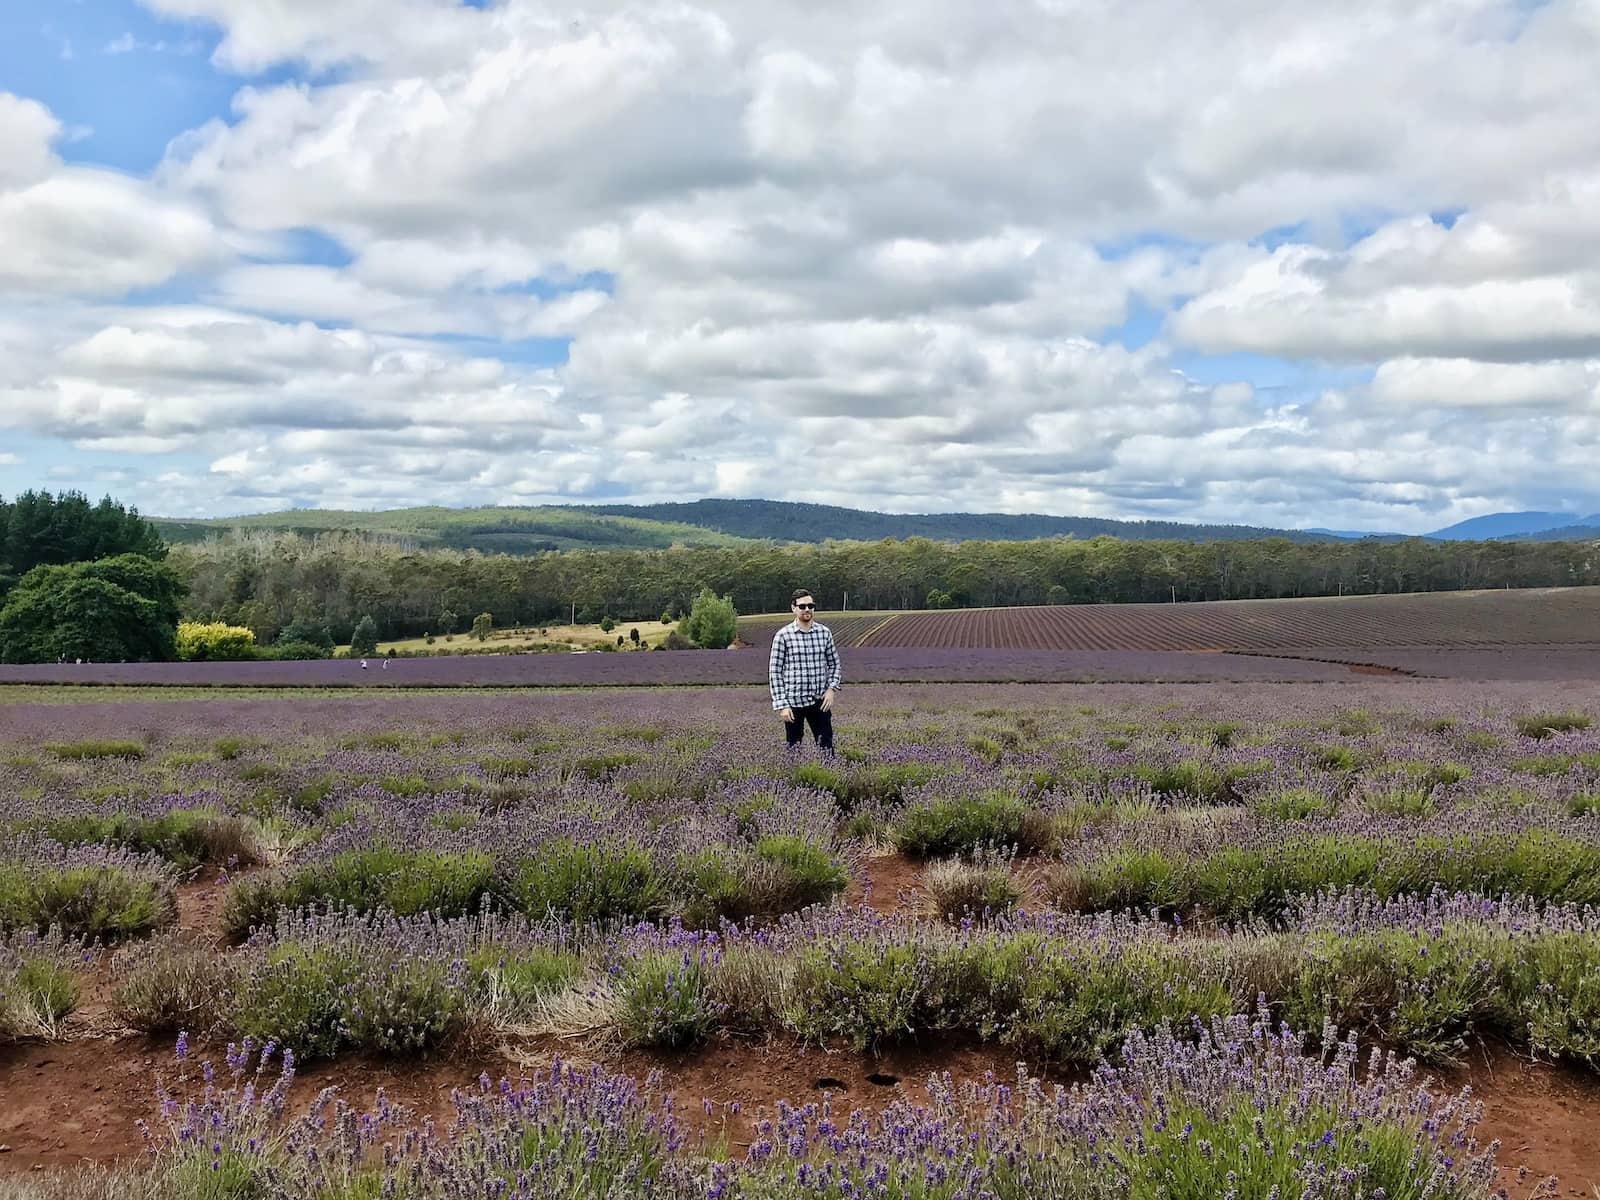 A man wearing a plaid shirt, wearing sunglasses, and a hand in his pocket, standing in a very big lavender field. The sky is blue but full of clouds